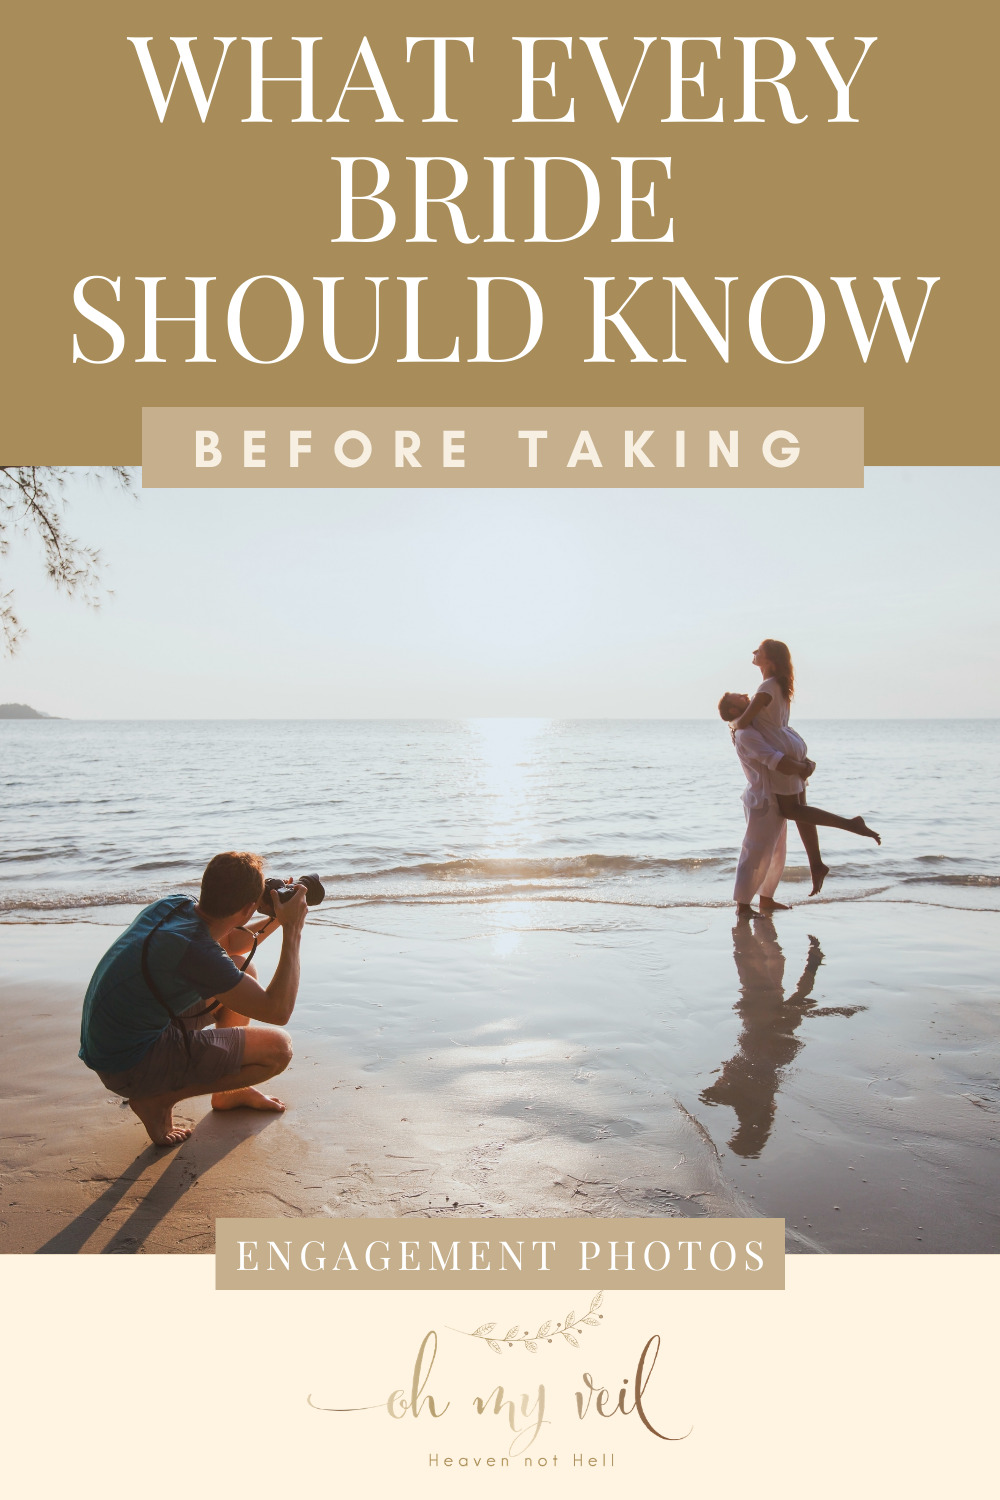 Ohmyveil.com is the absolute best resource for new brides. Make sure your big day is planned perfectly down to the last detail. If you're considering taking engagement photos, make sure you check out these things you MUST know beforehand.